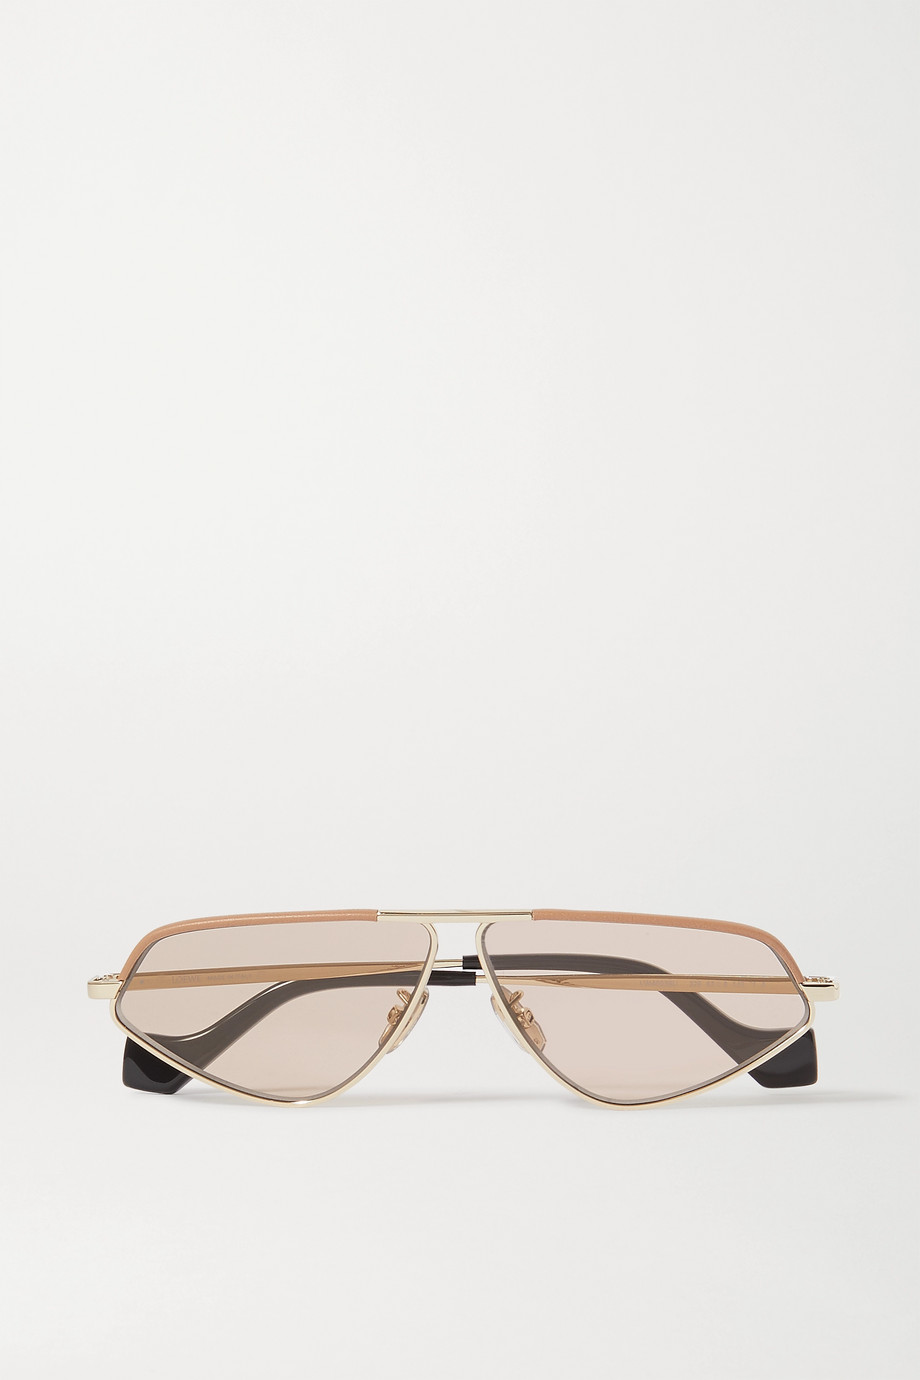 Loewe Cat-eye gold-tone and acetate sunglasses